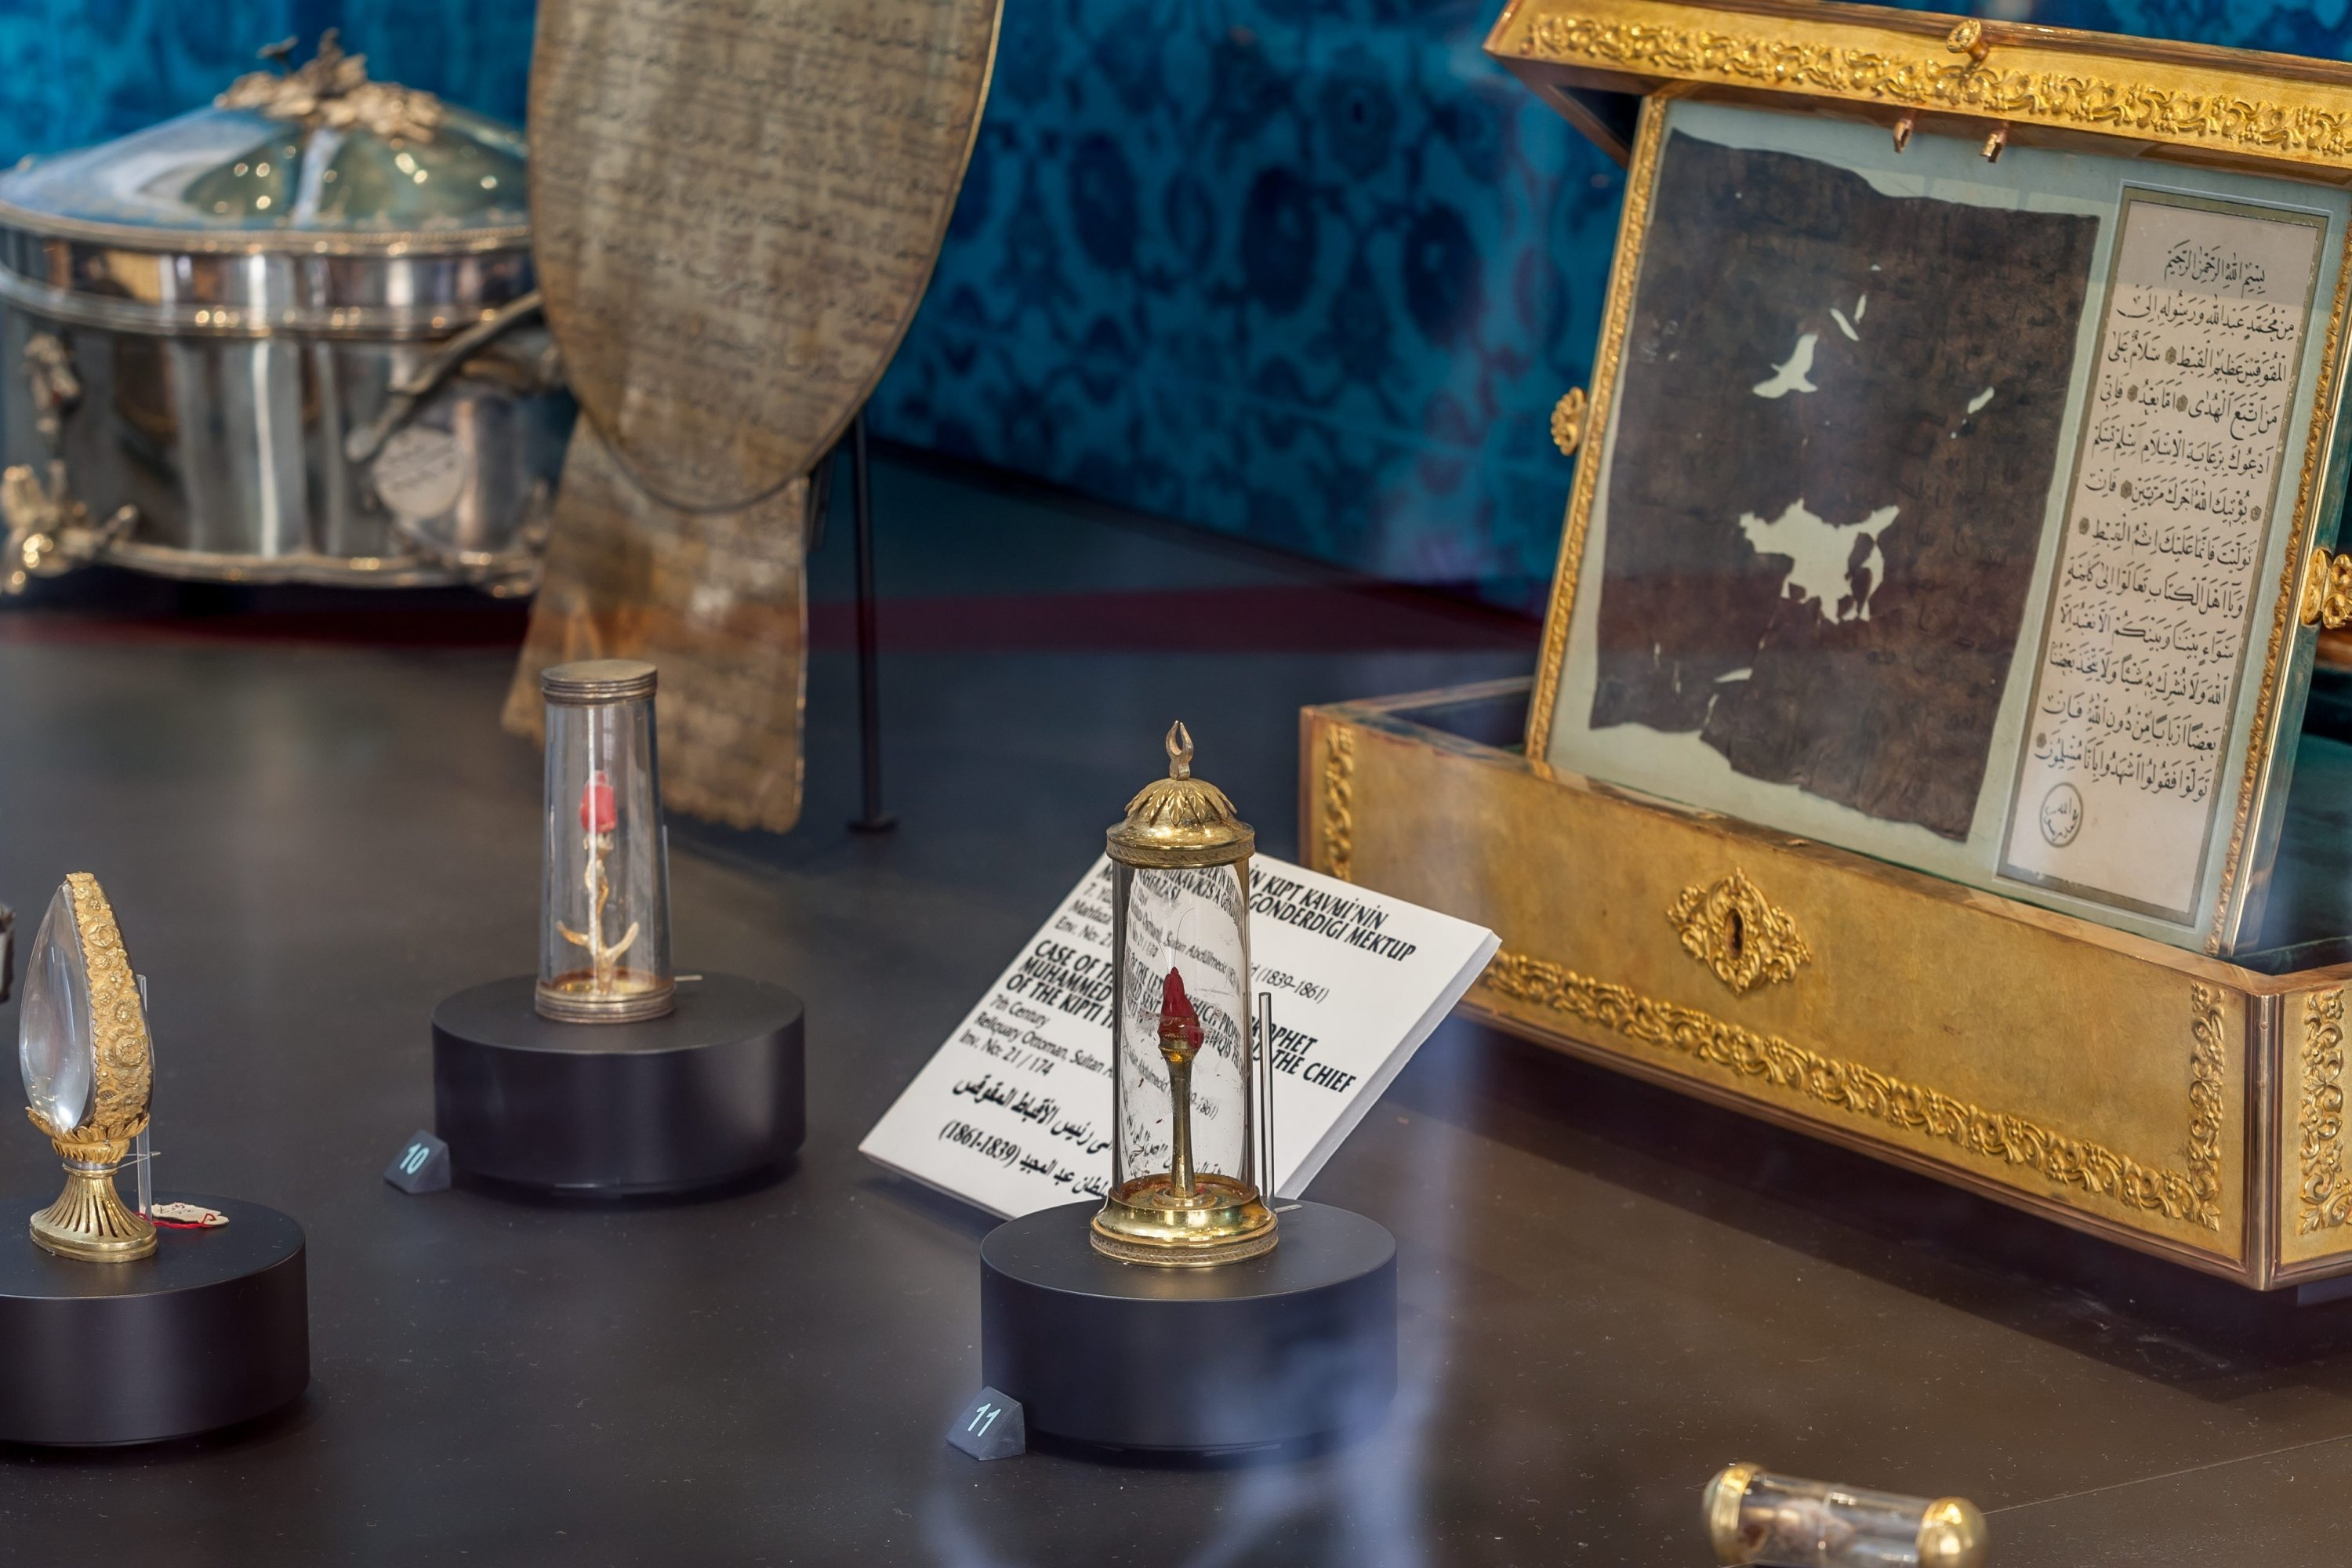 Some sacred relics on display at the Topkapı Palace's Shrine of the Sacred Relics, Istanbul, Turkey, July 17, 2014. (Photo by Recai Kömür)